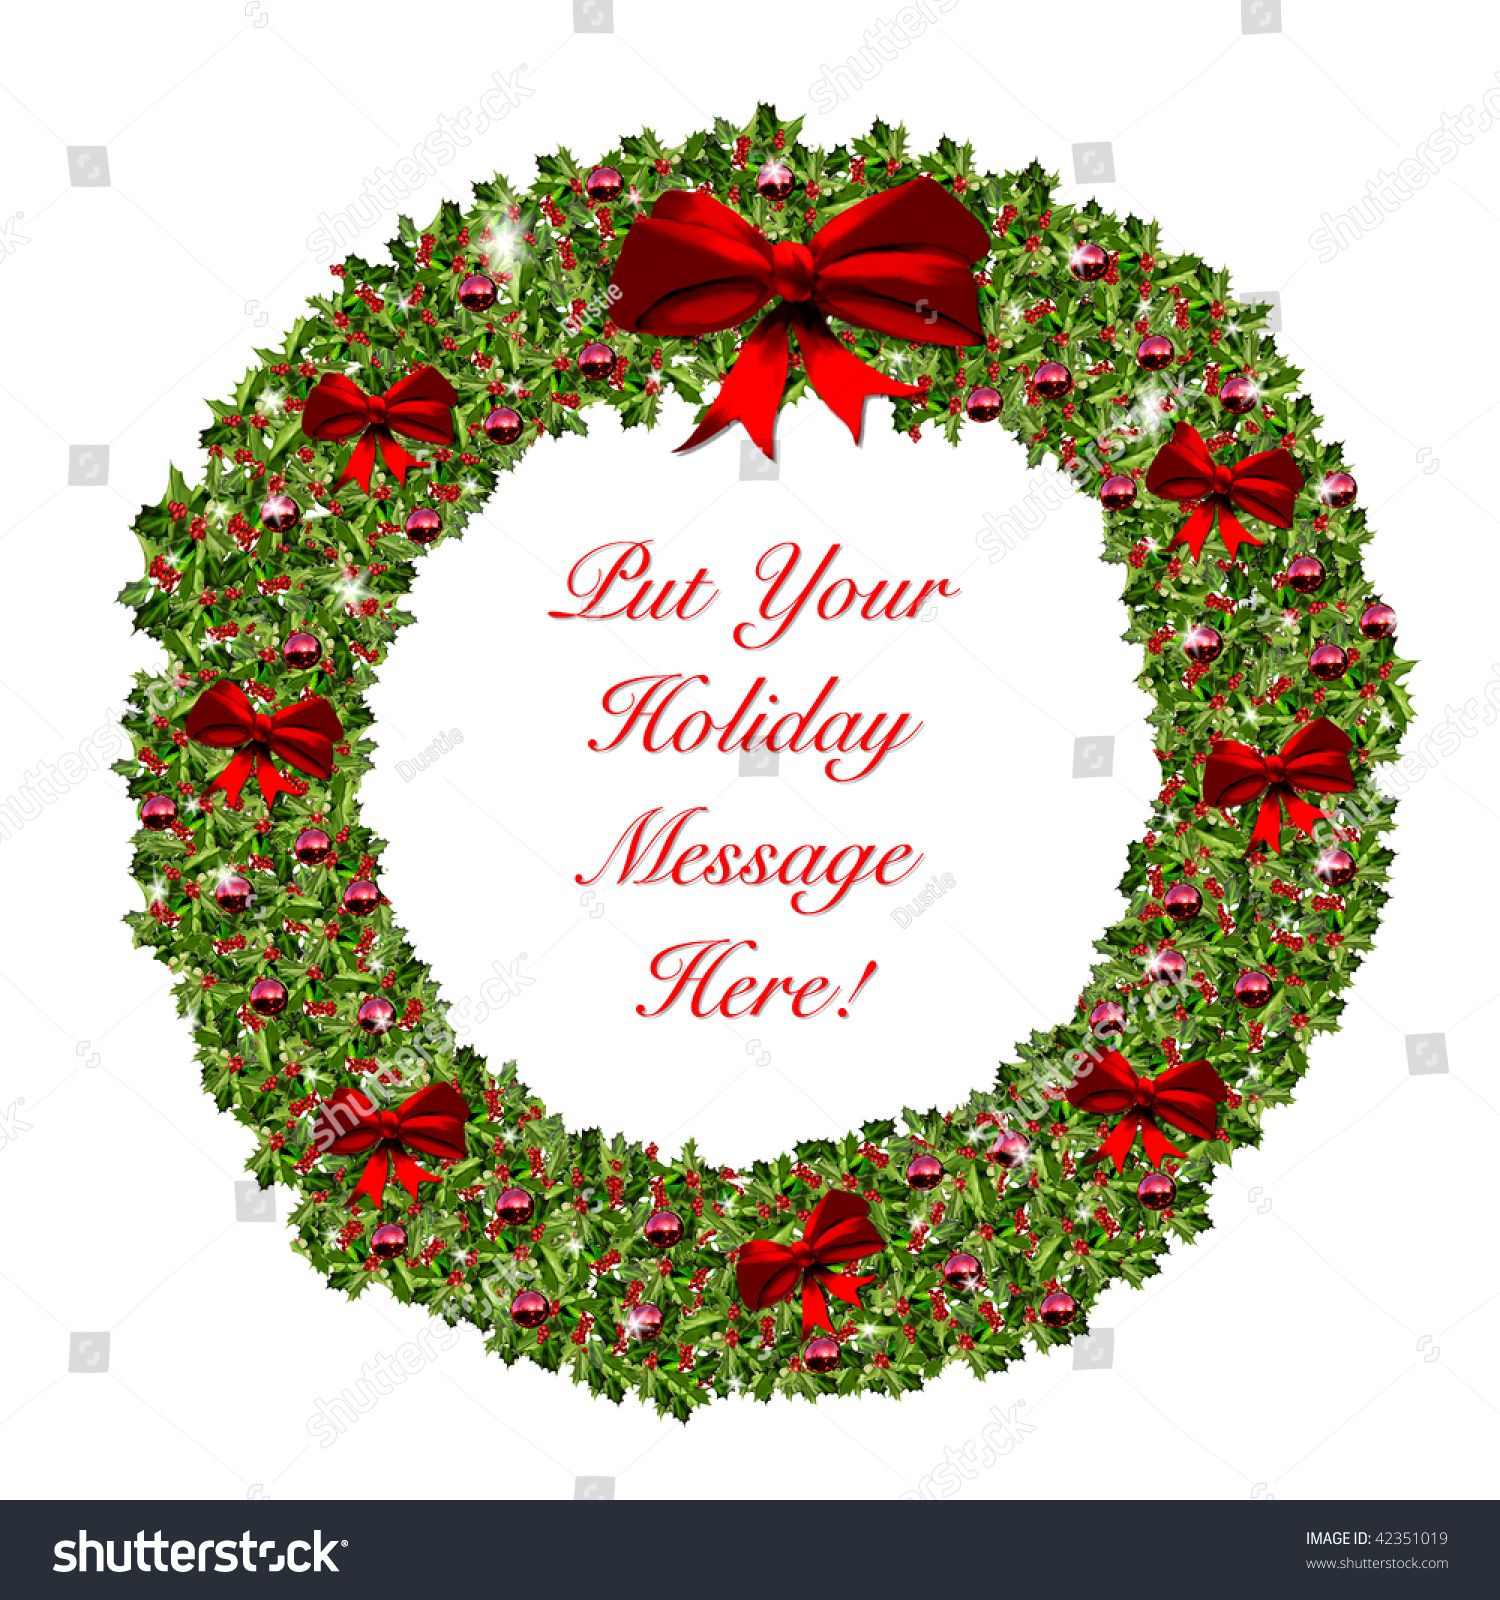 Red green christmas holiday wreath perfect stock illustration red and green christmas holiday wreath perfect for seasons greeting and personalized message to friends kristyandbryce Choice Image